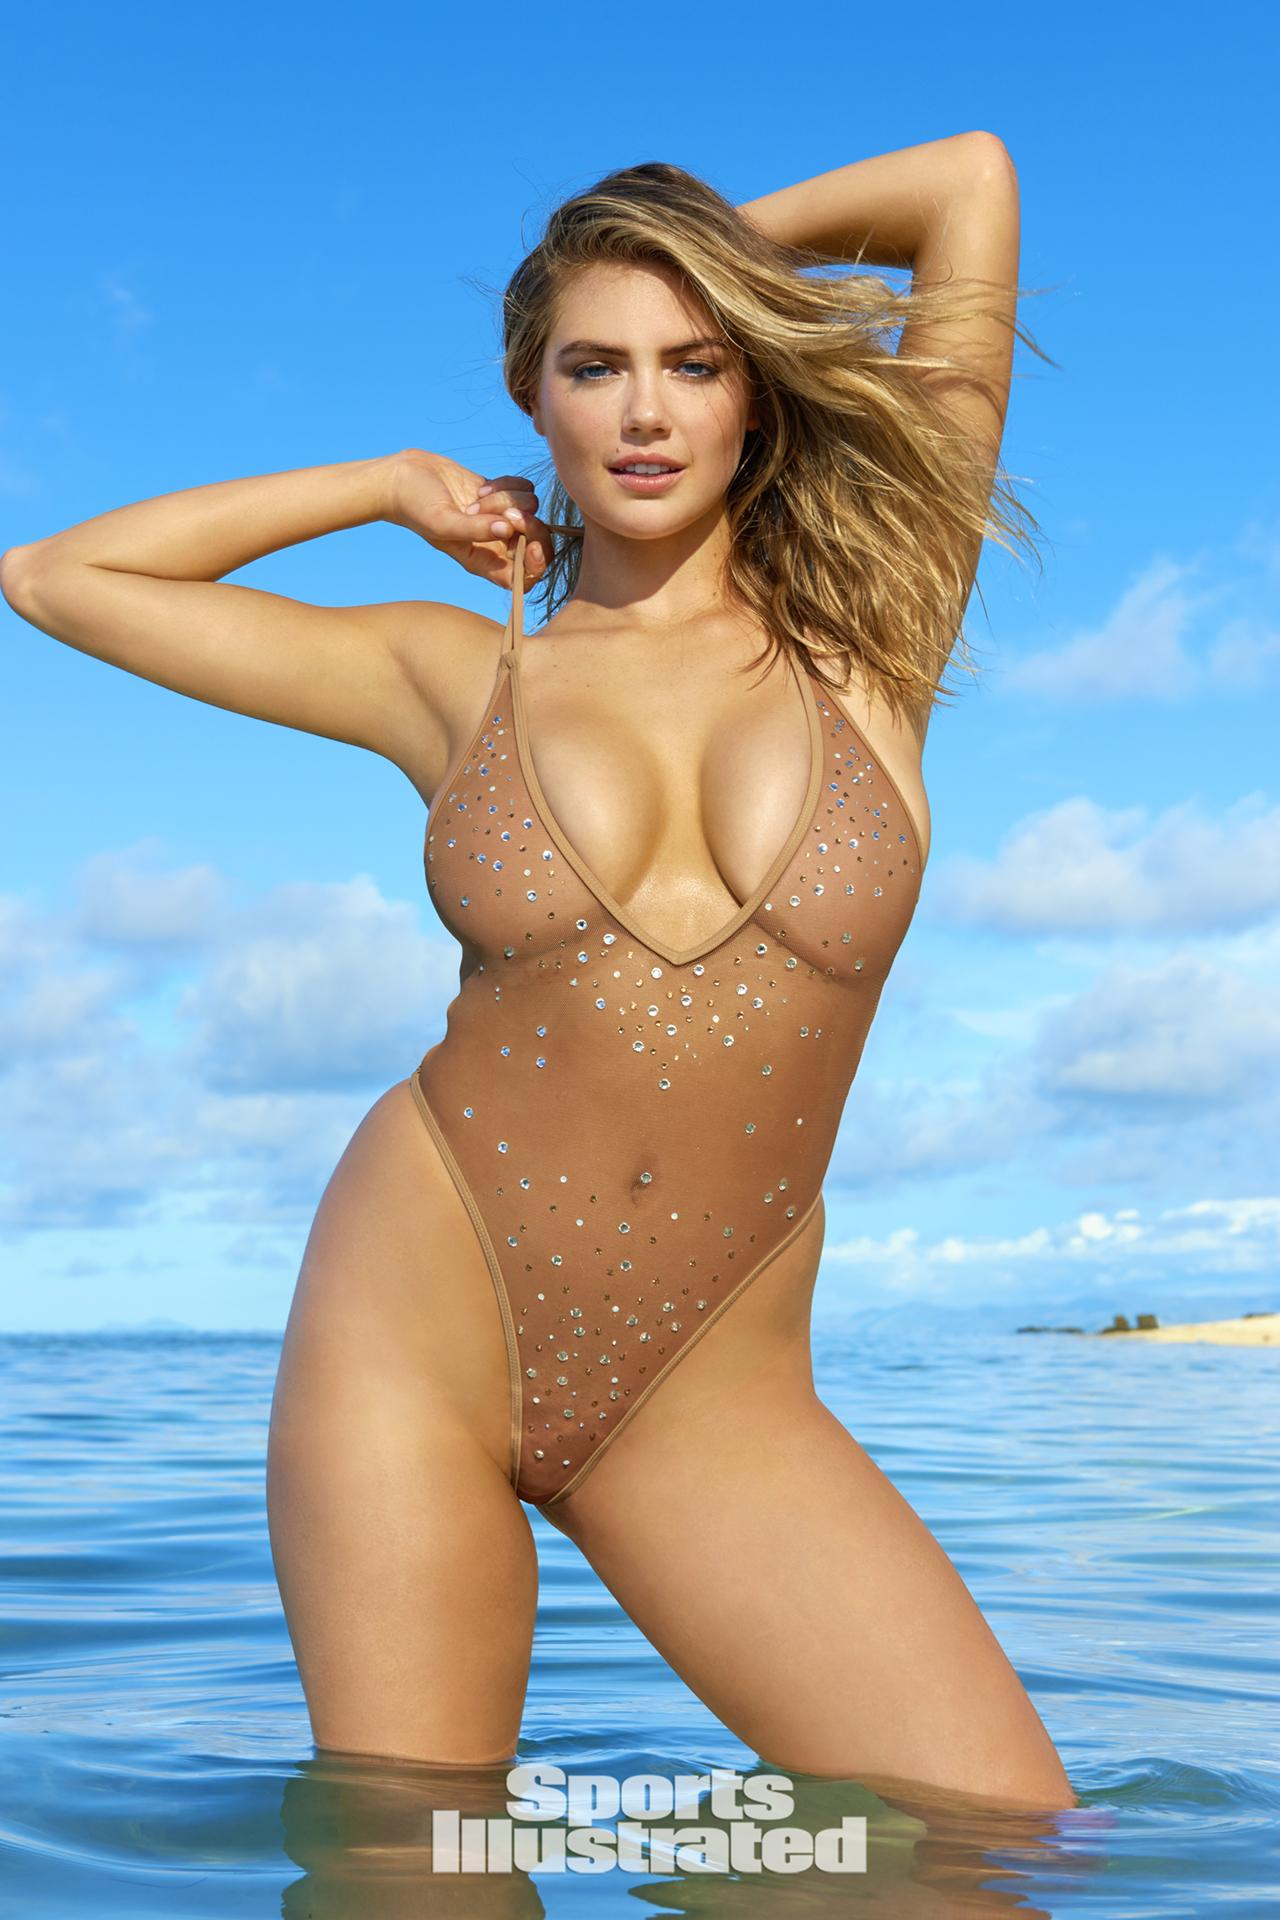 New Plus size sports illustrated swimsuit model that